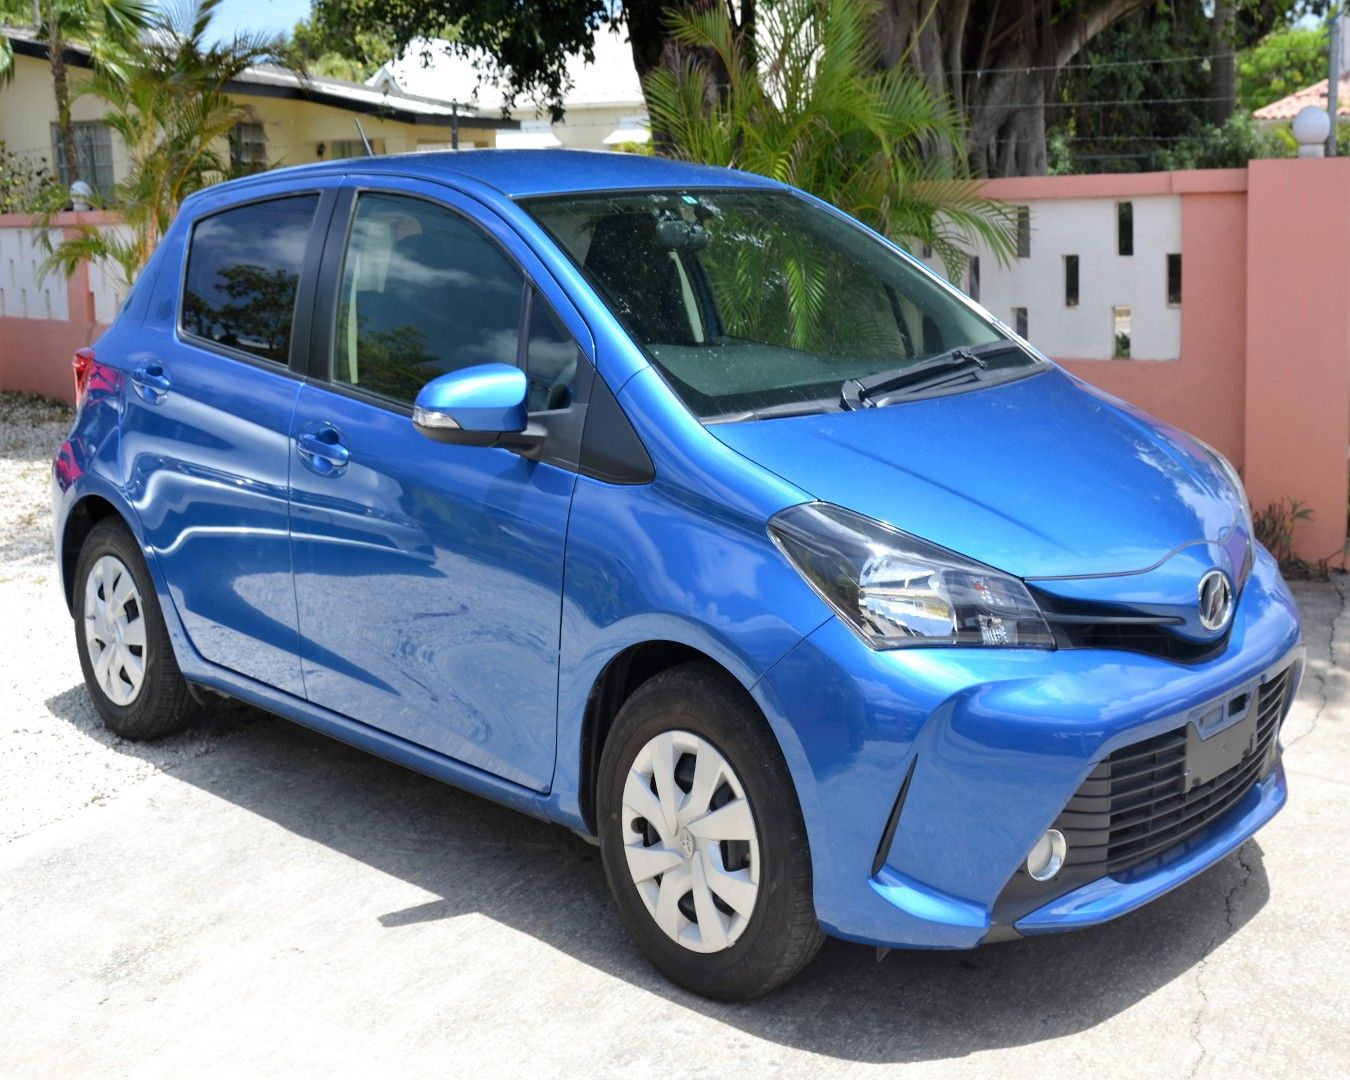 Compact Cars Compact Cars Rent A Car Small Cars